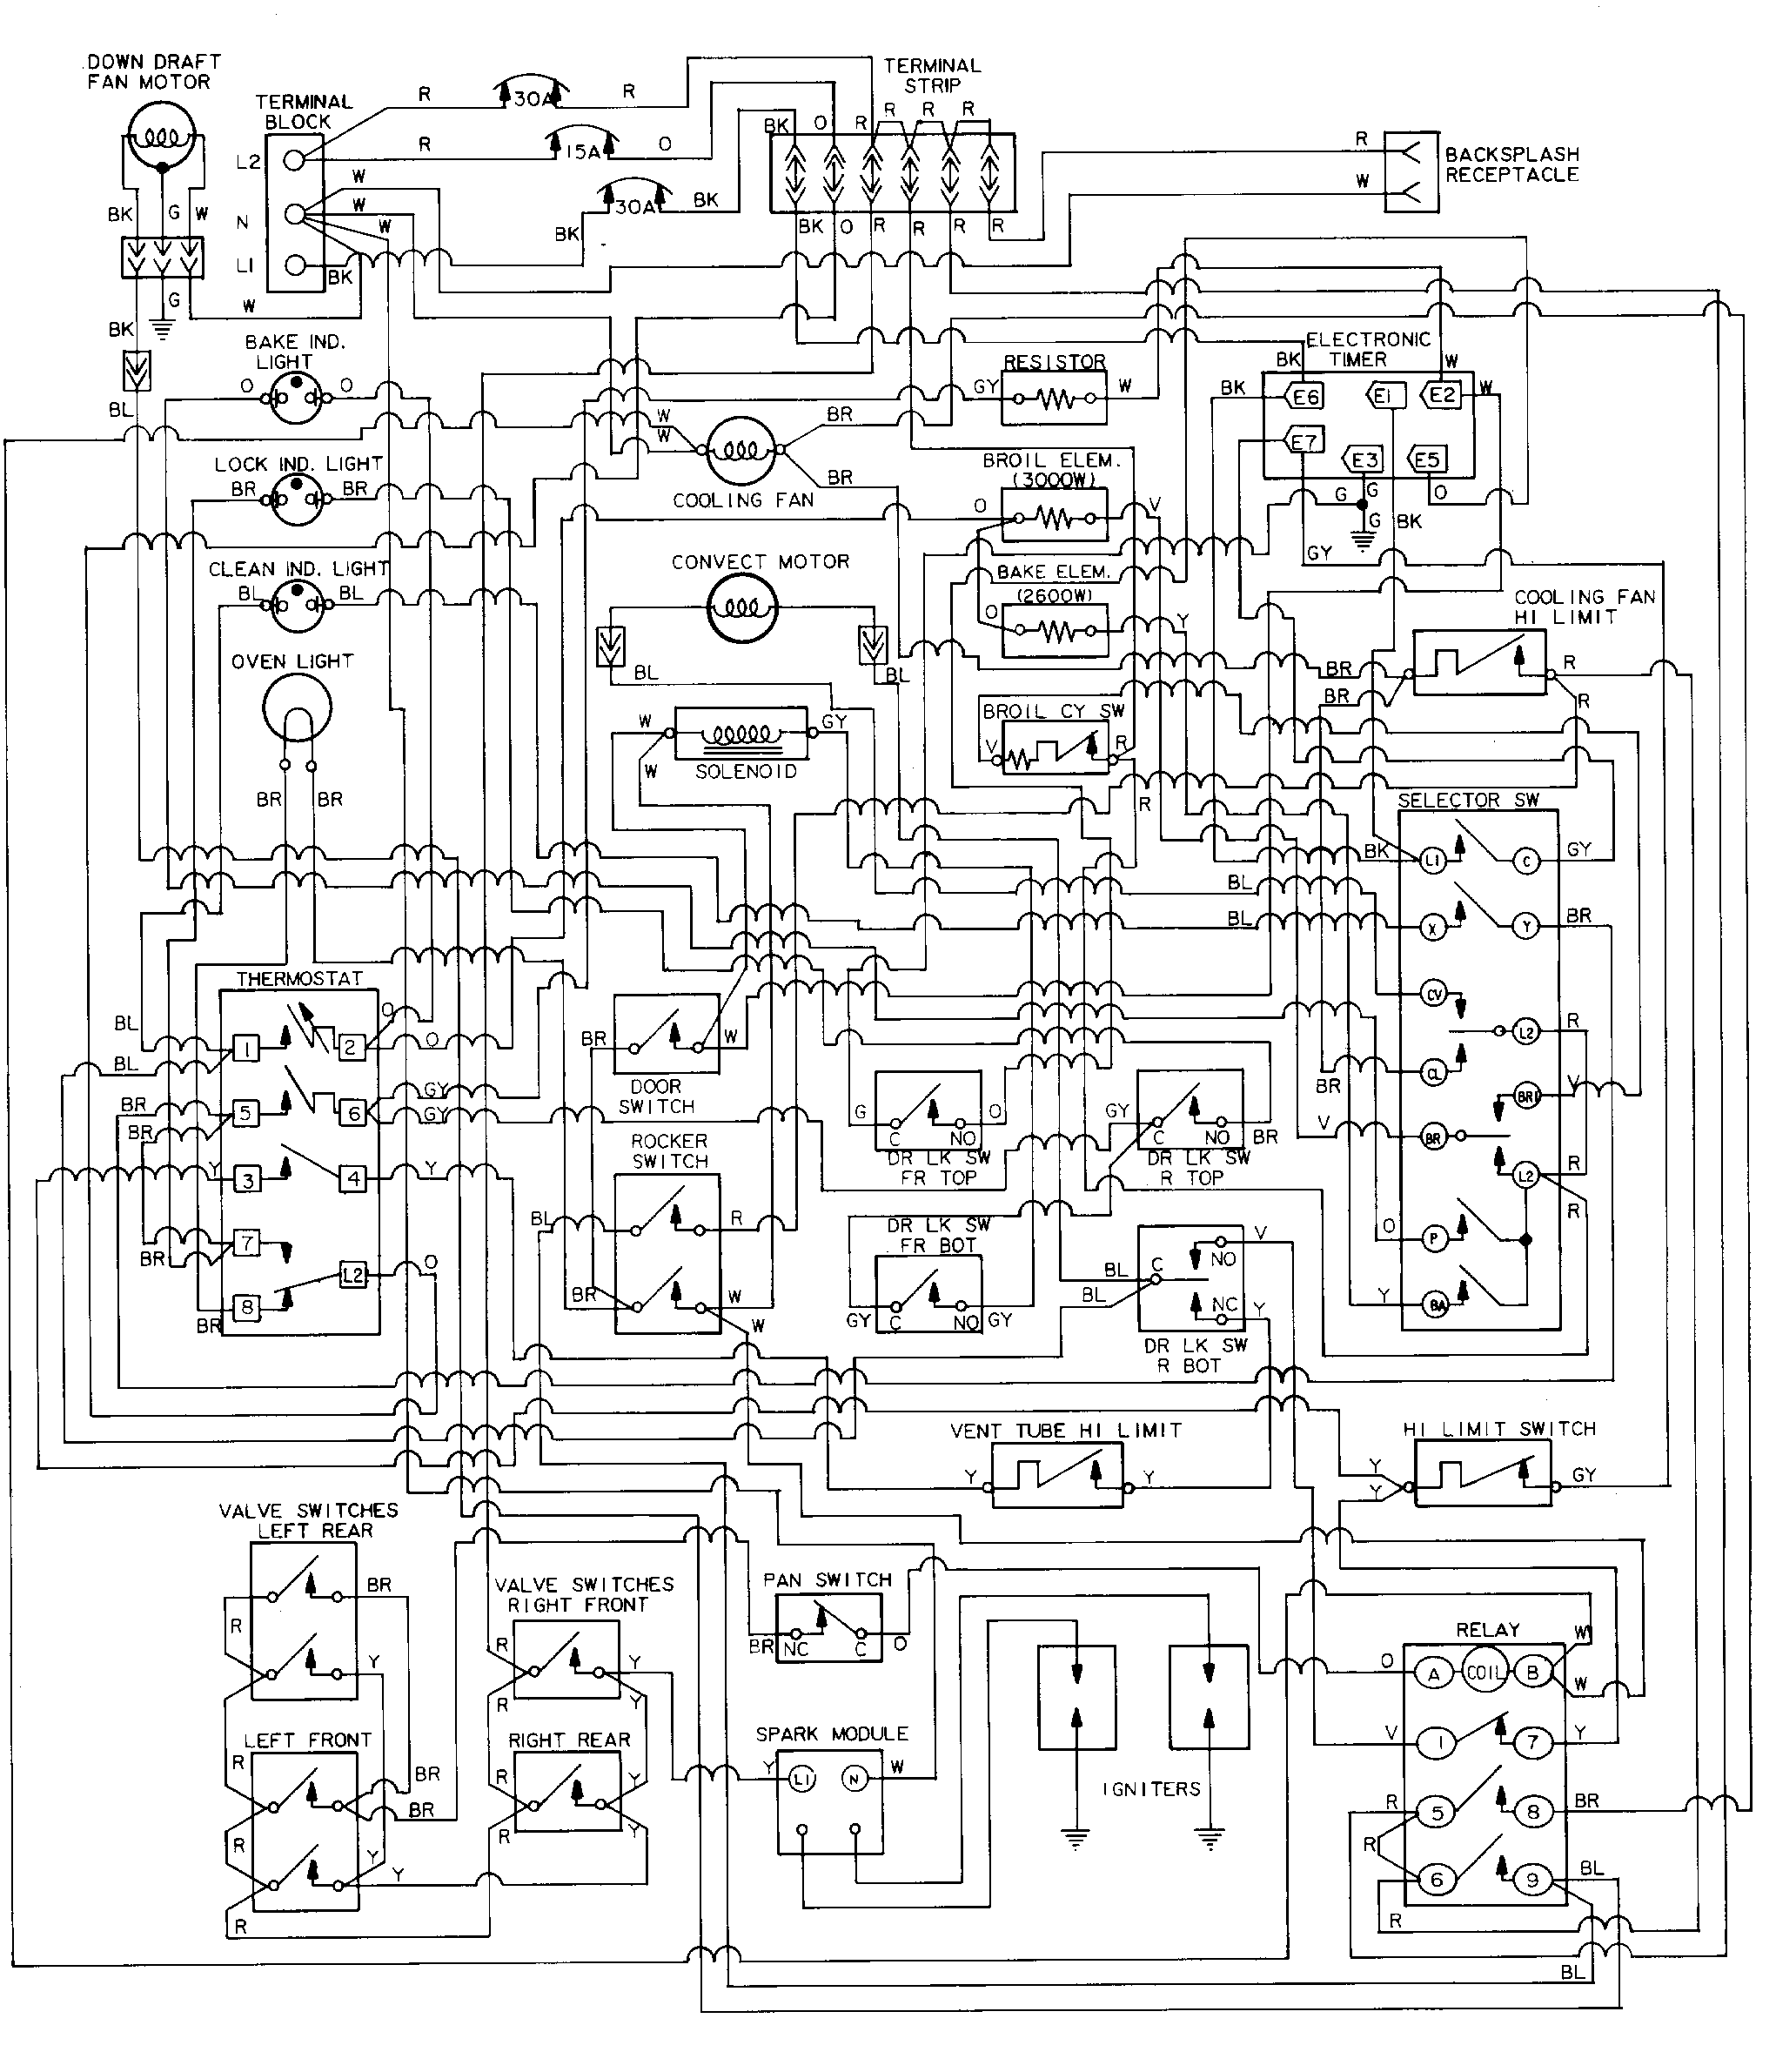 M0410001 00013?resize\=665%2C775 ruud heat pump wiring diagram & best ruud heat pump wiring diagram ducane heat pump wiring diagram at crackthecode.co